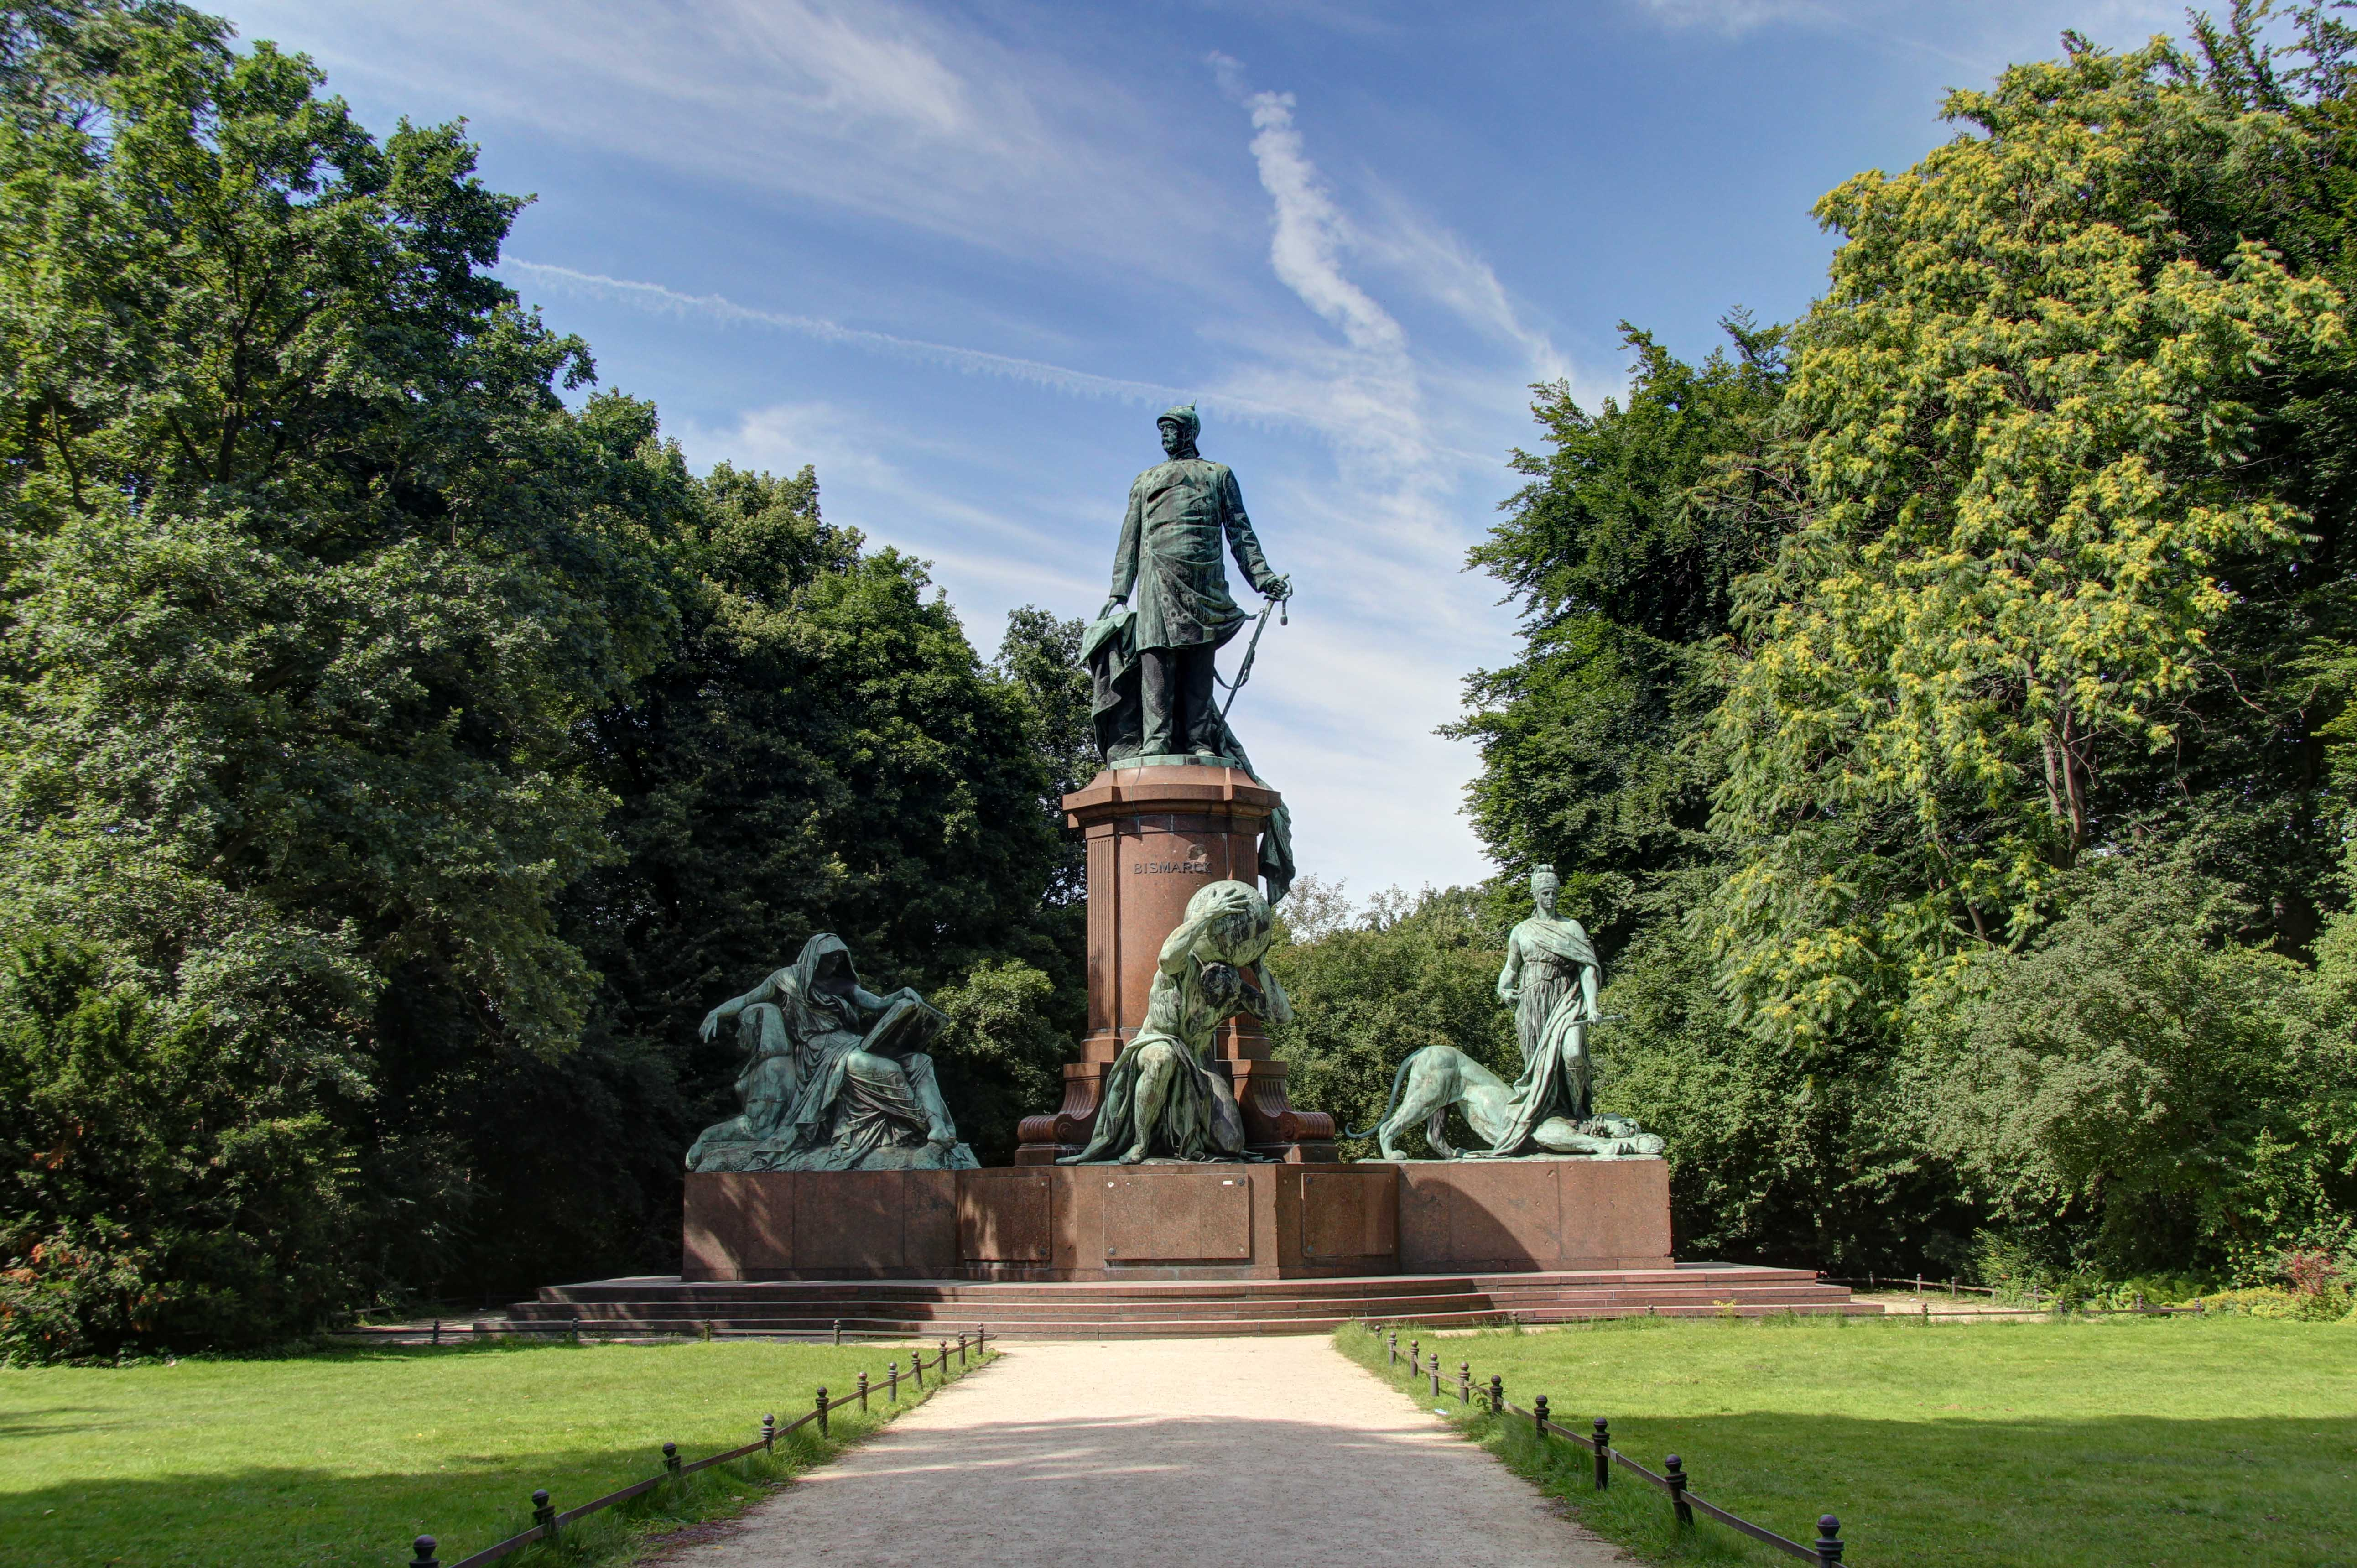 The Bismarck Memorial in the Tiergarten in Berlin